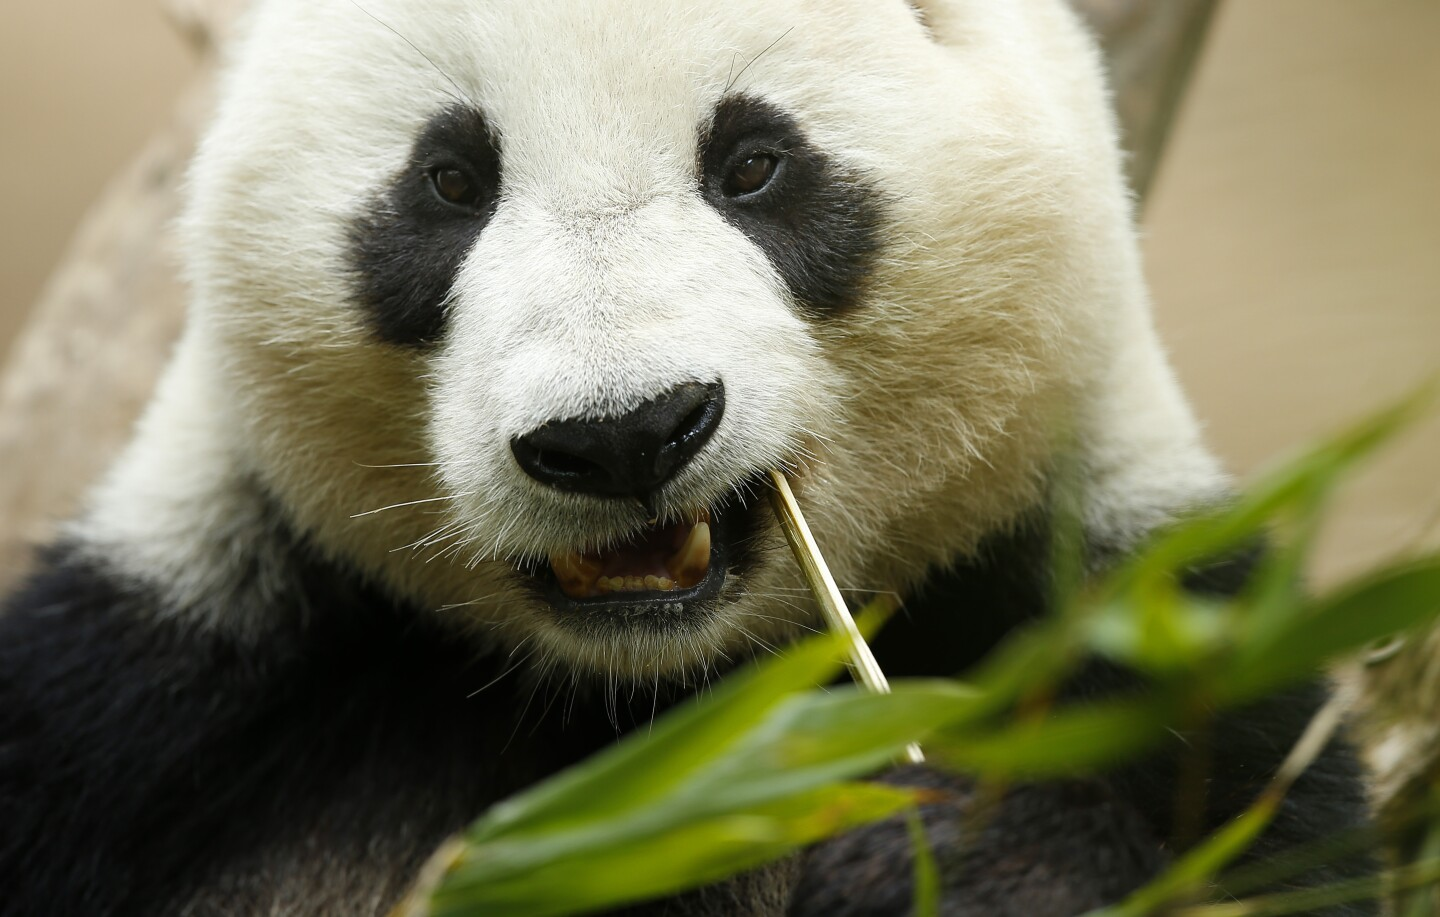 Panda Xiao Liwu, 6, eats bamboo in his enclosure at the San Diego Zoo on April 16, 2019. The last public day to see Xiao Liwu and his mom Bai Yun is April 29th, before they head back to China. (Photo by K.C. Alfred/The San Diego Union-Tribune)